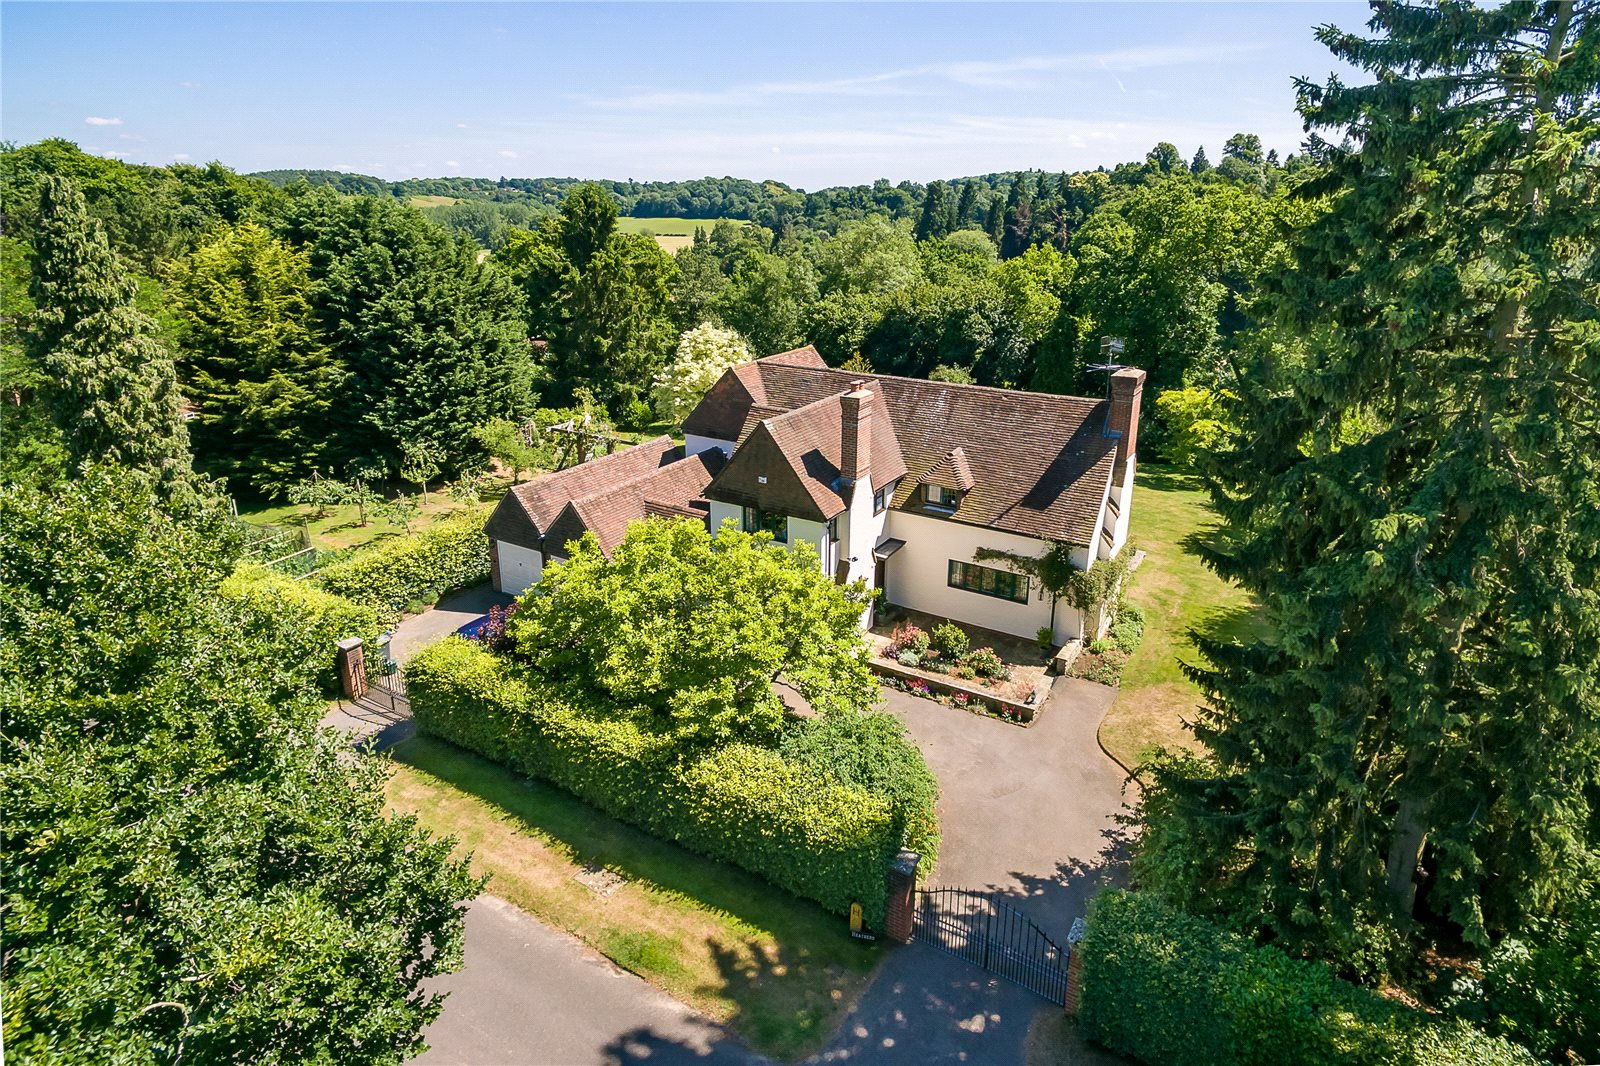 Villa per Vendita alle ore Snowdenham Links Road, Bramley, Guildford, Surrey, GU5 Guildford, Inghilterra